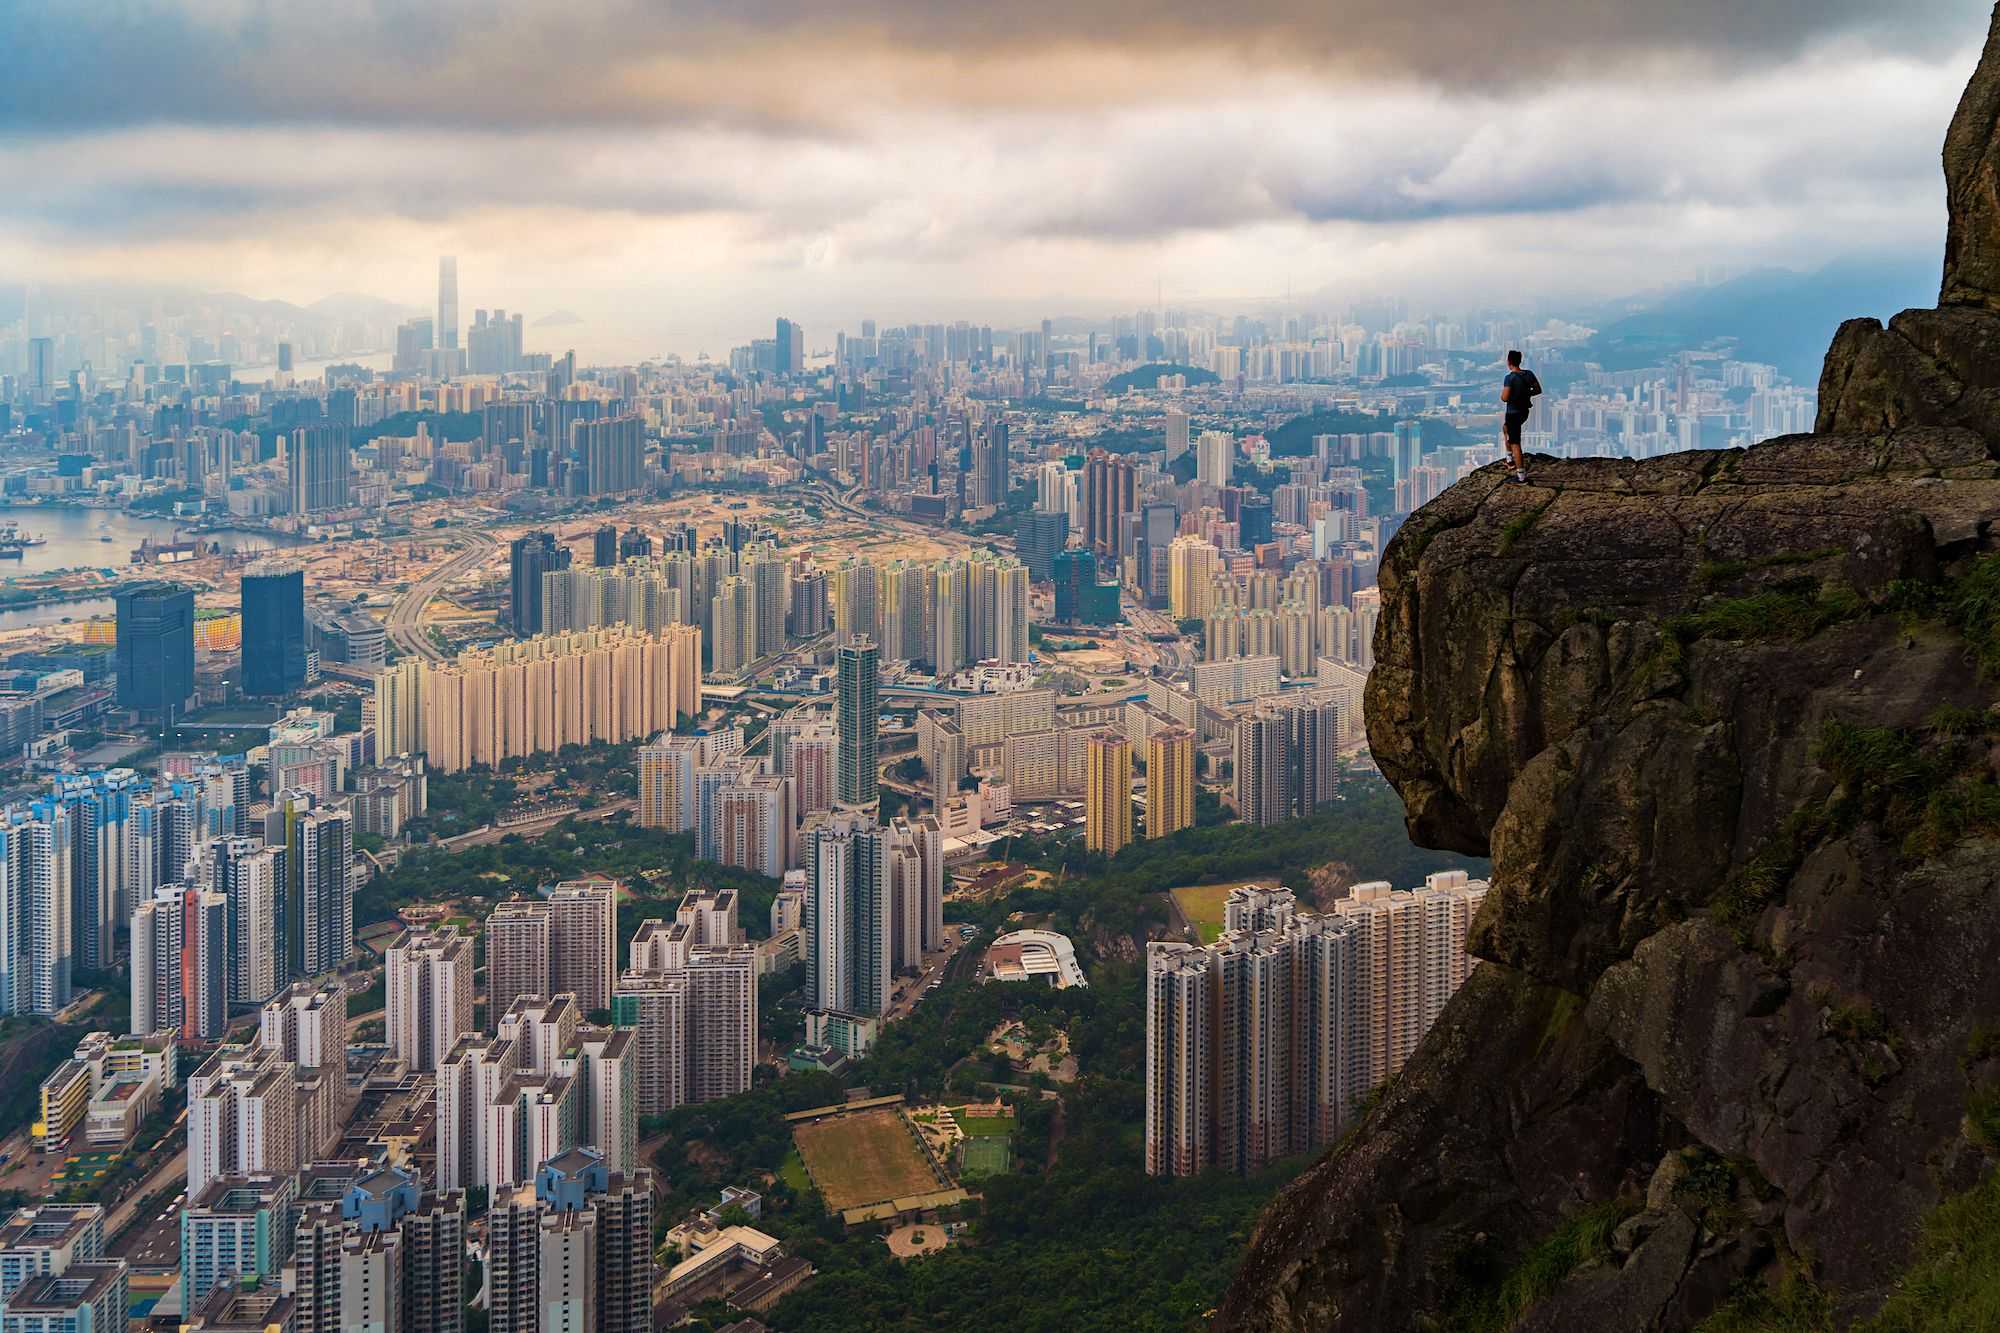 Hong Kong Hikes: 7 Of The Highest Peaks To Conquer